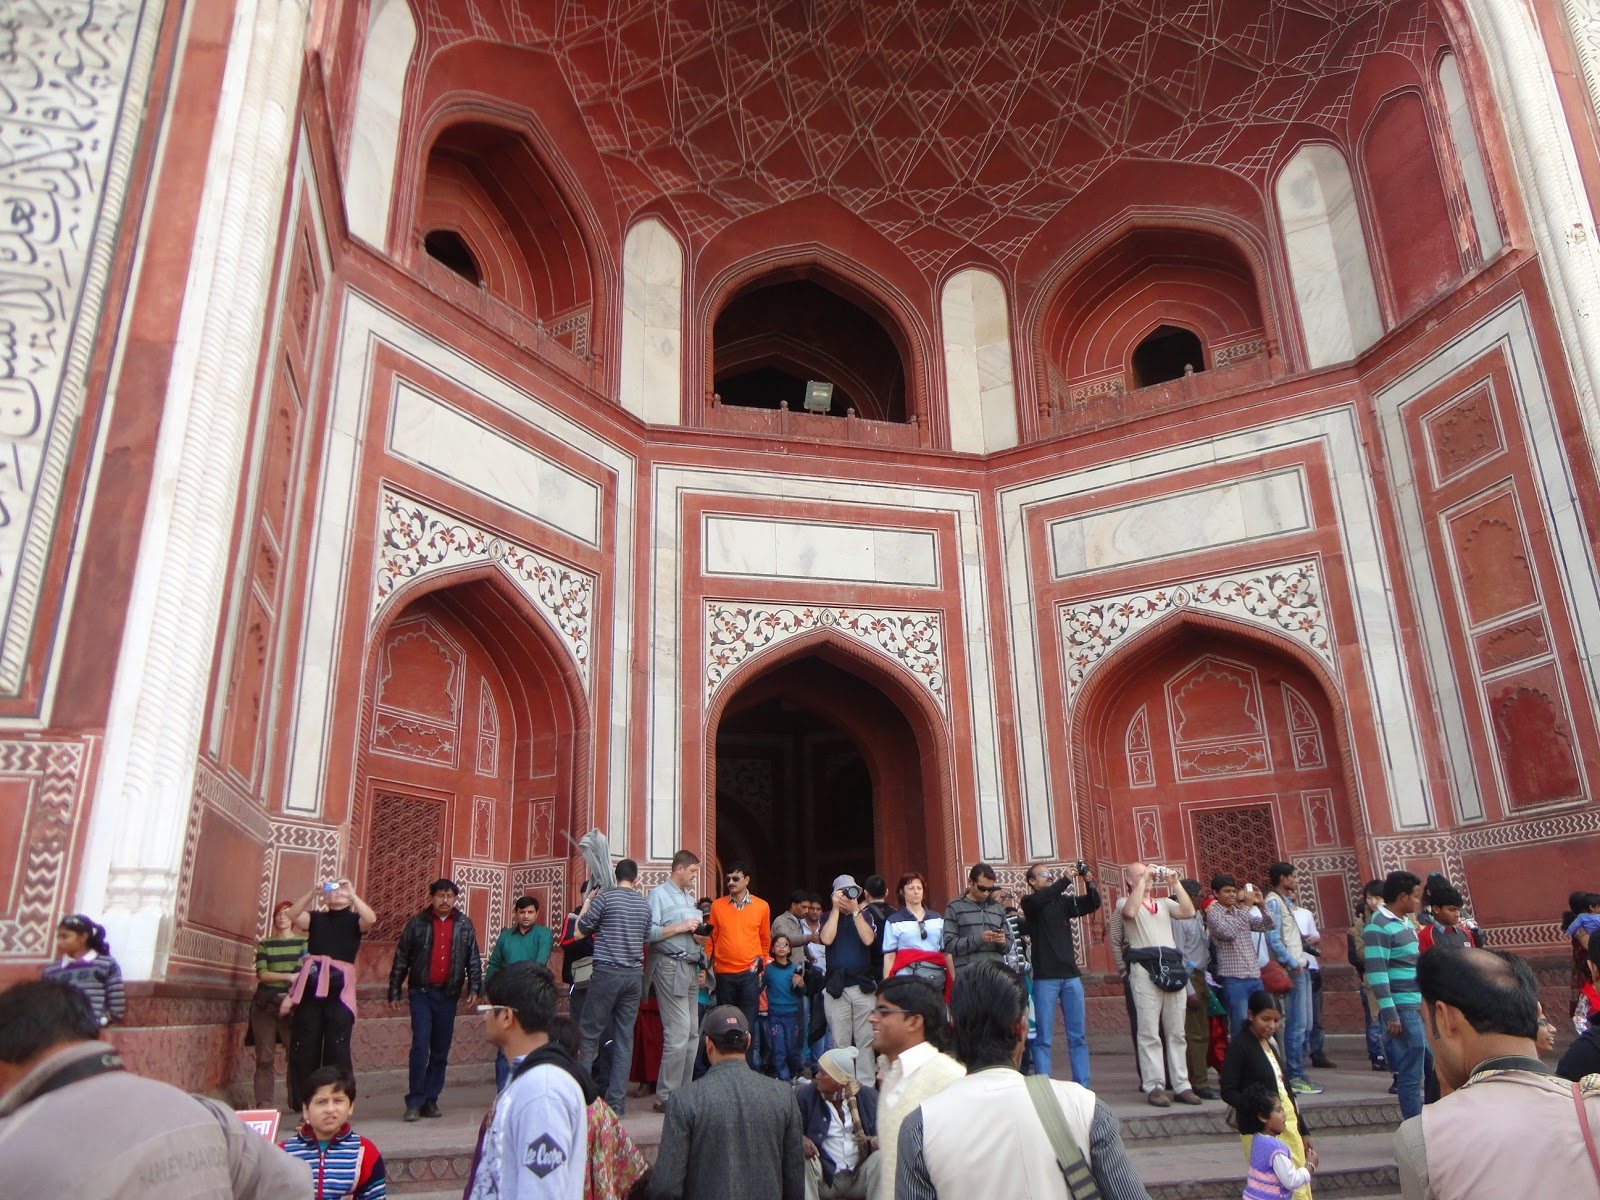 Inside The main gate of The Taj Mahal